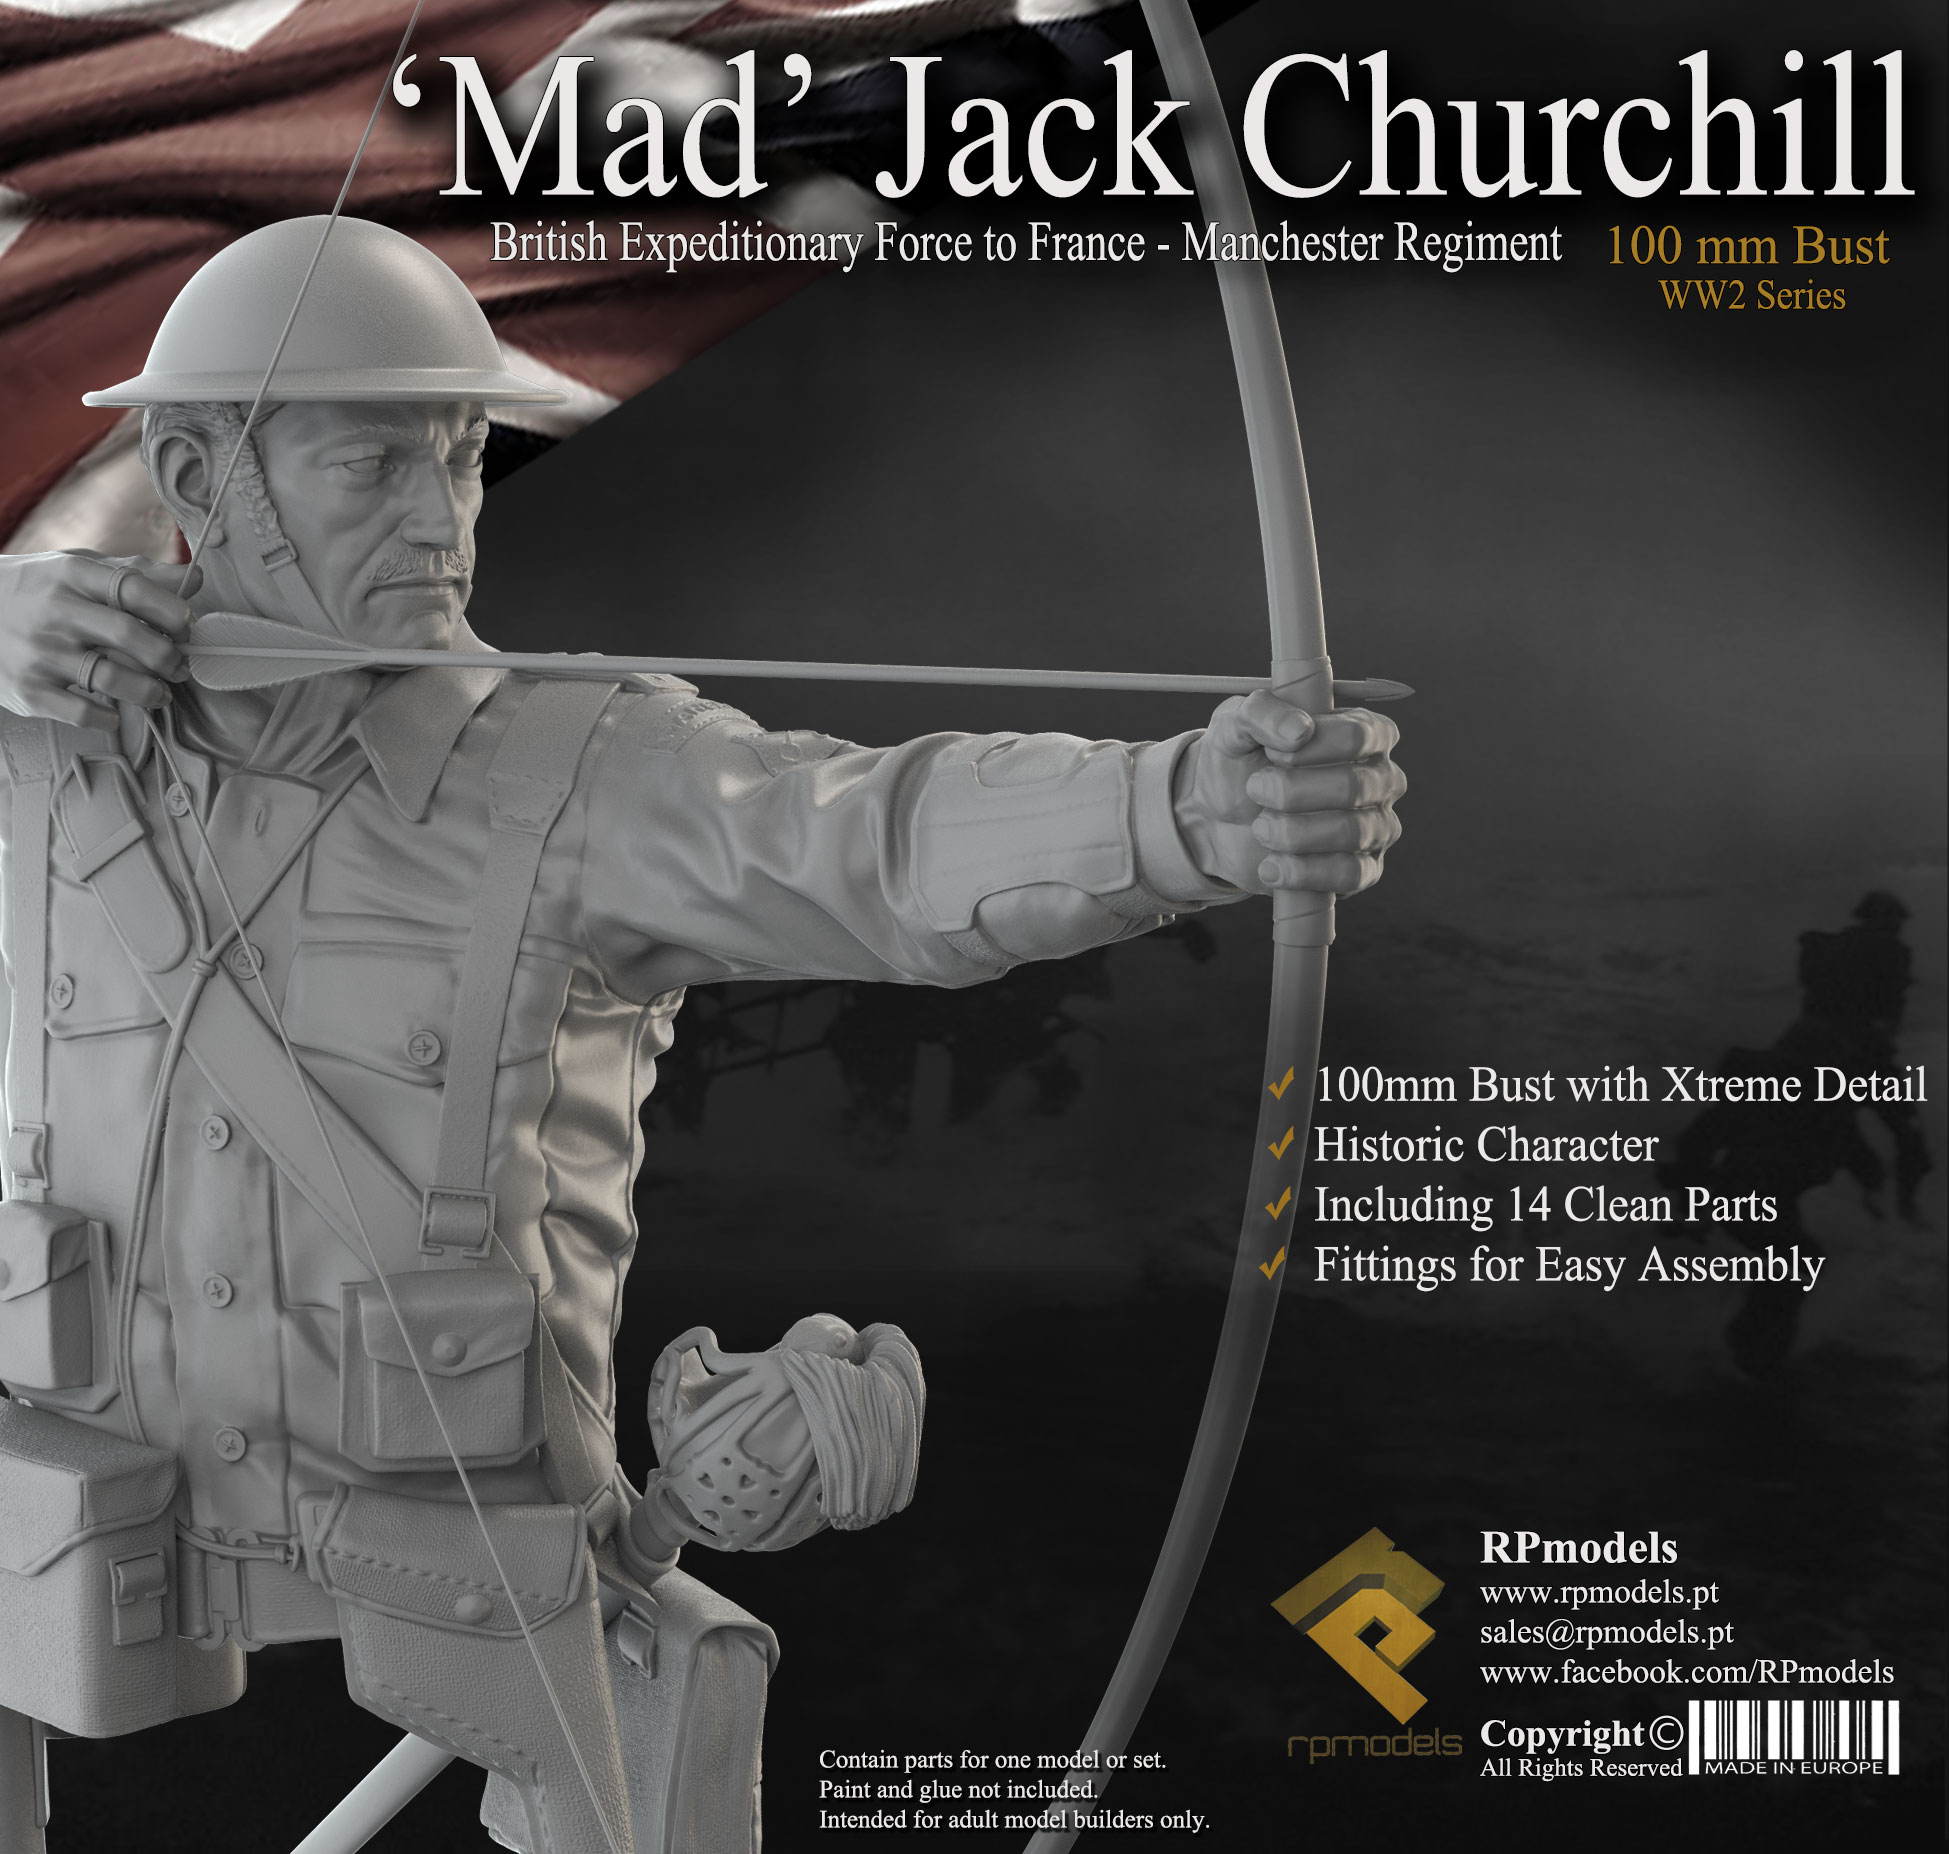 69124 Msi 970 Gaming Amd Am3 Motherboard Review 4 furthermore 619964396316430336 furthermore Mad Jack Churchill Video Presentation From Rp Models also Five Nights At Freddy S 2 Old Foxy Papercraft Pt 2 517342018 further Spitfire Mk Xvi S3d Cura Ready. on pt model forum